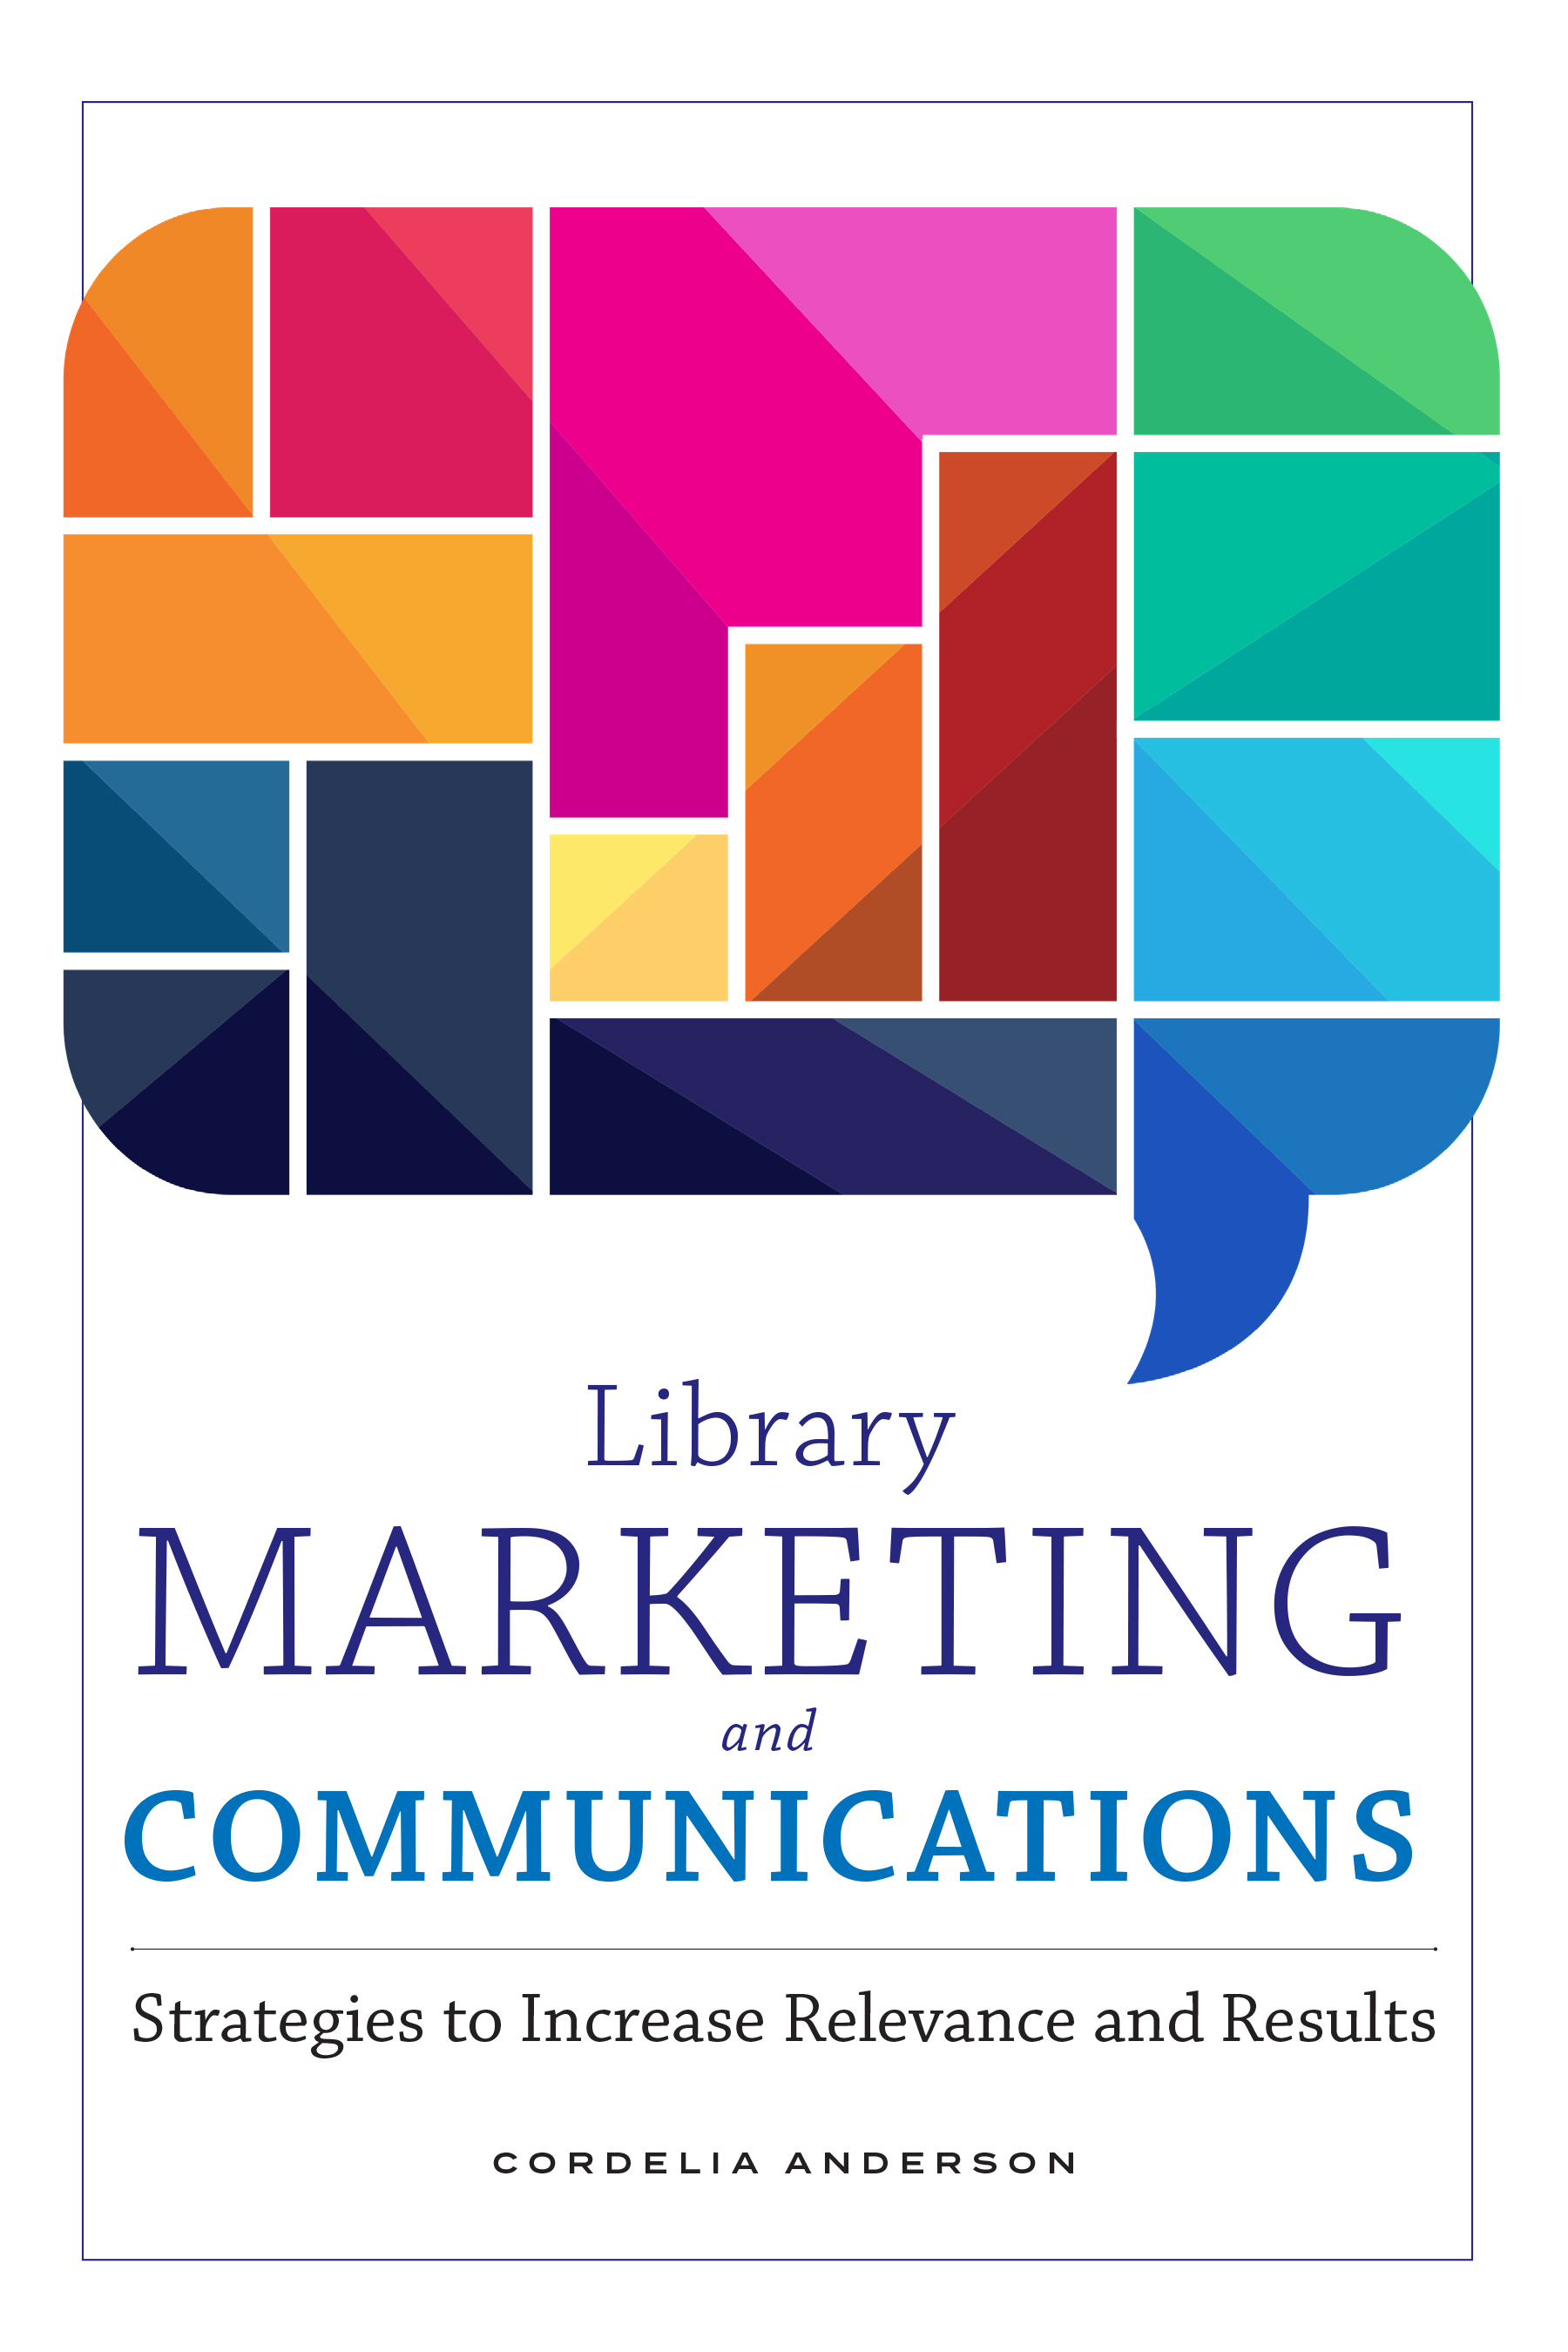 Image for Library Marketing and Communications: Strategies to Increase Relevance and Results